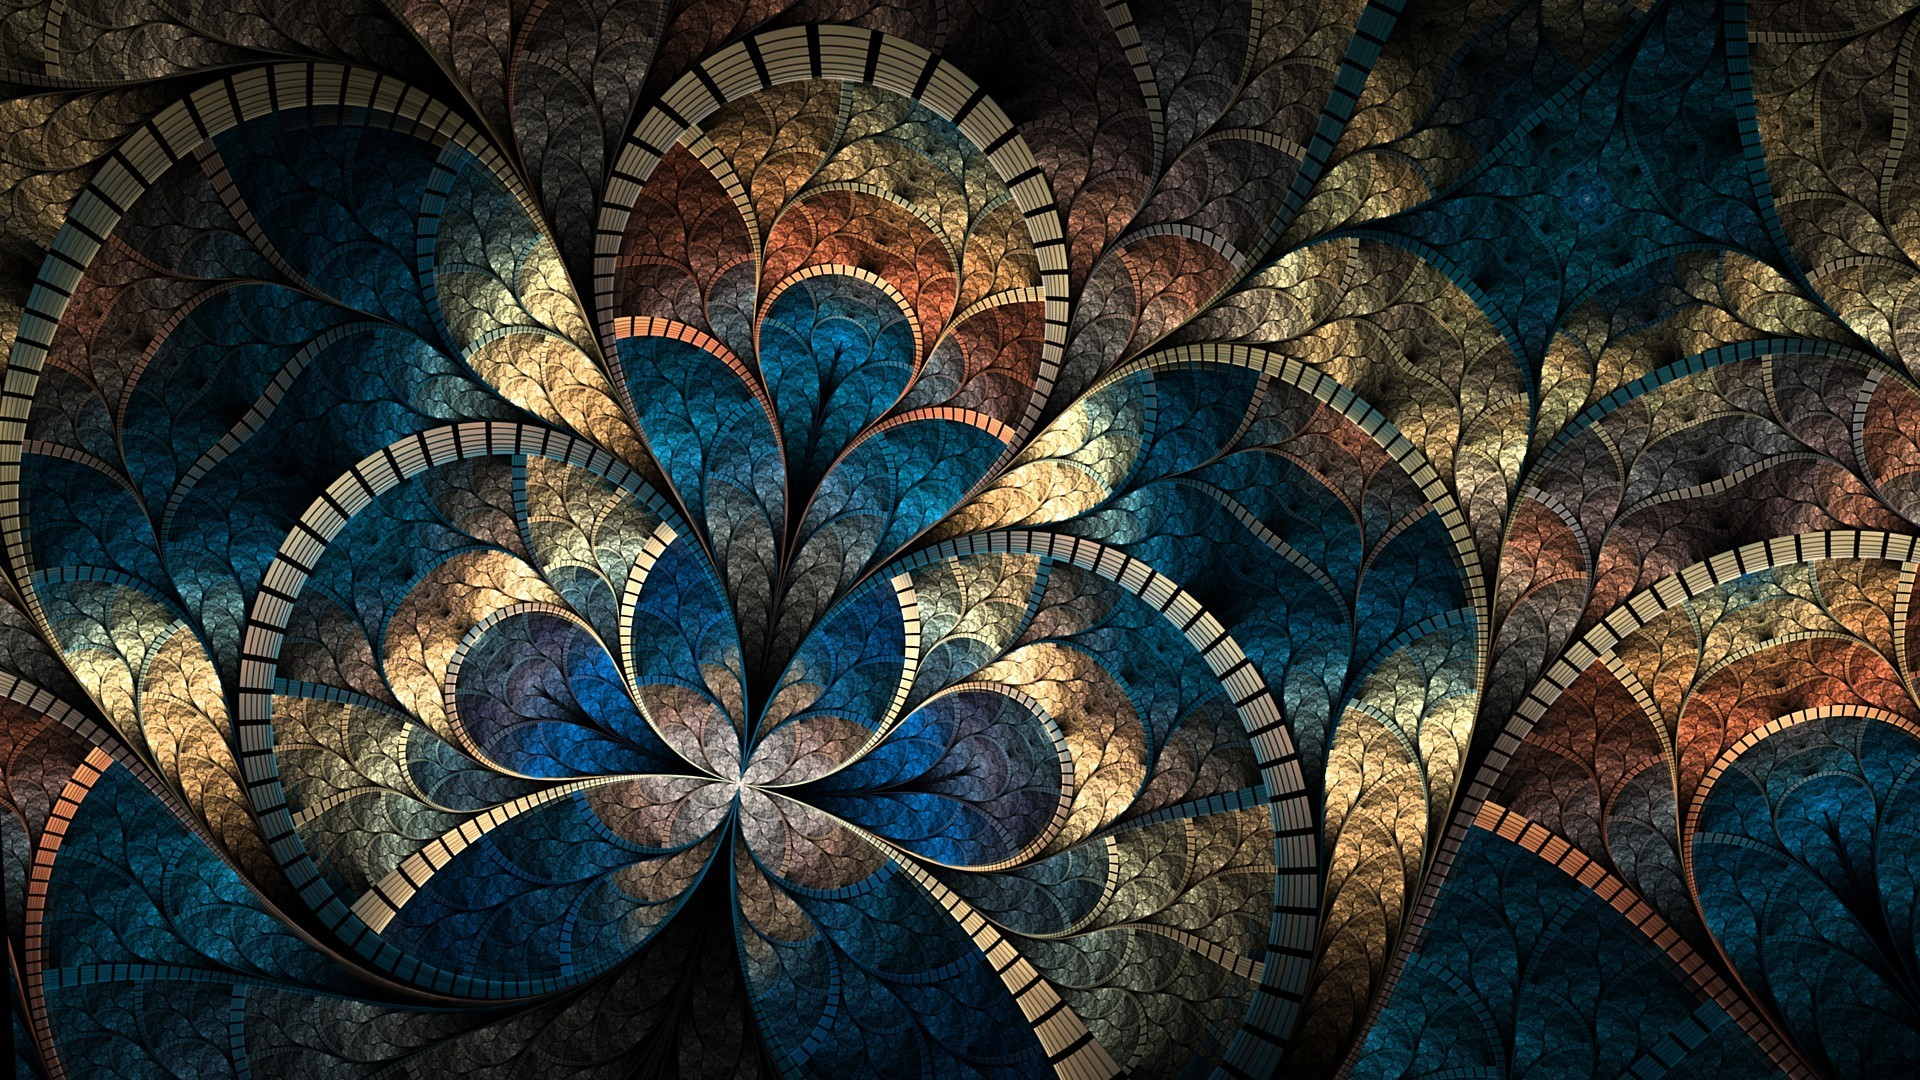 pattern psychedelic wallpaper 1920x1080 26256 WallpaperUP 1920x1080